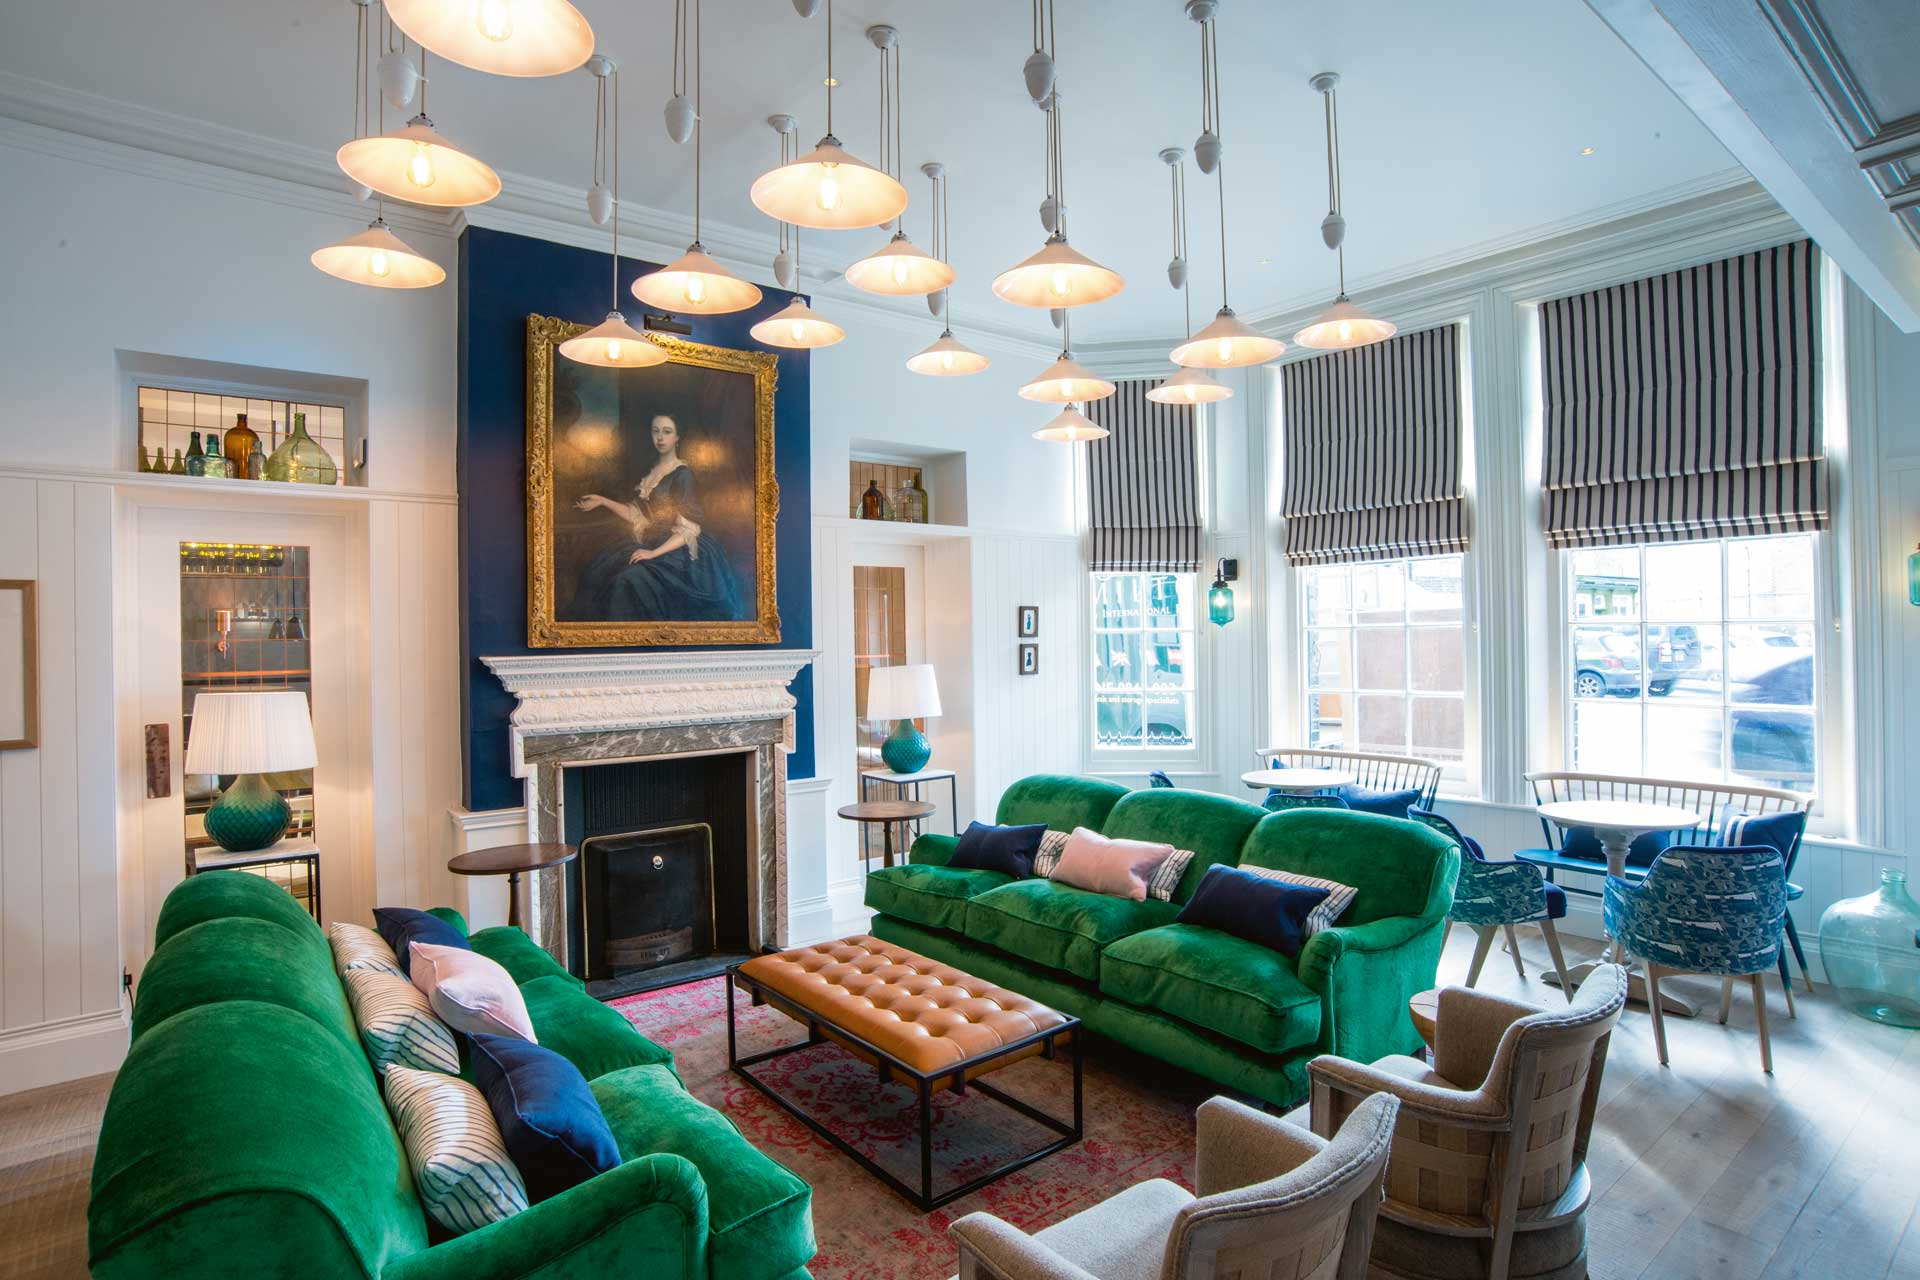 Hotel lounge for guests of The Swan in Southwold